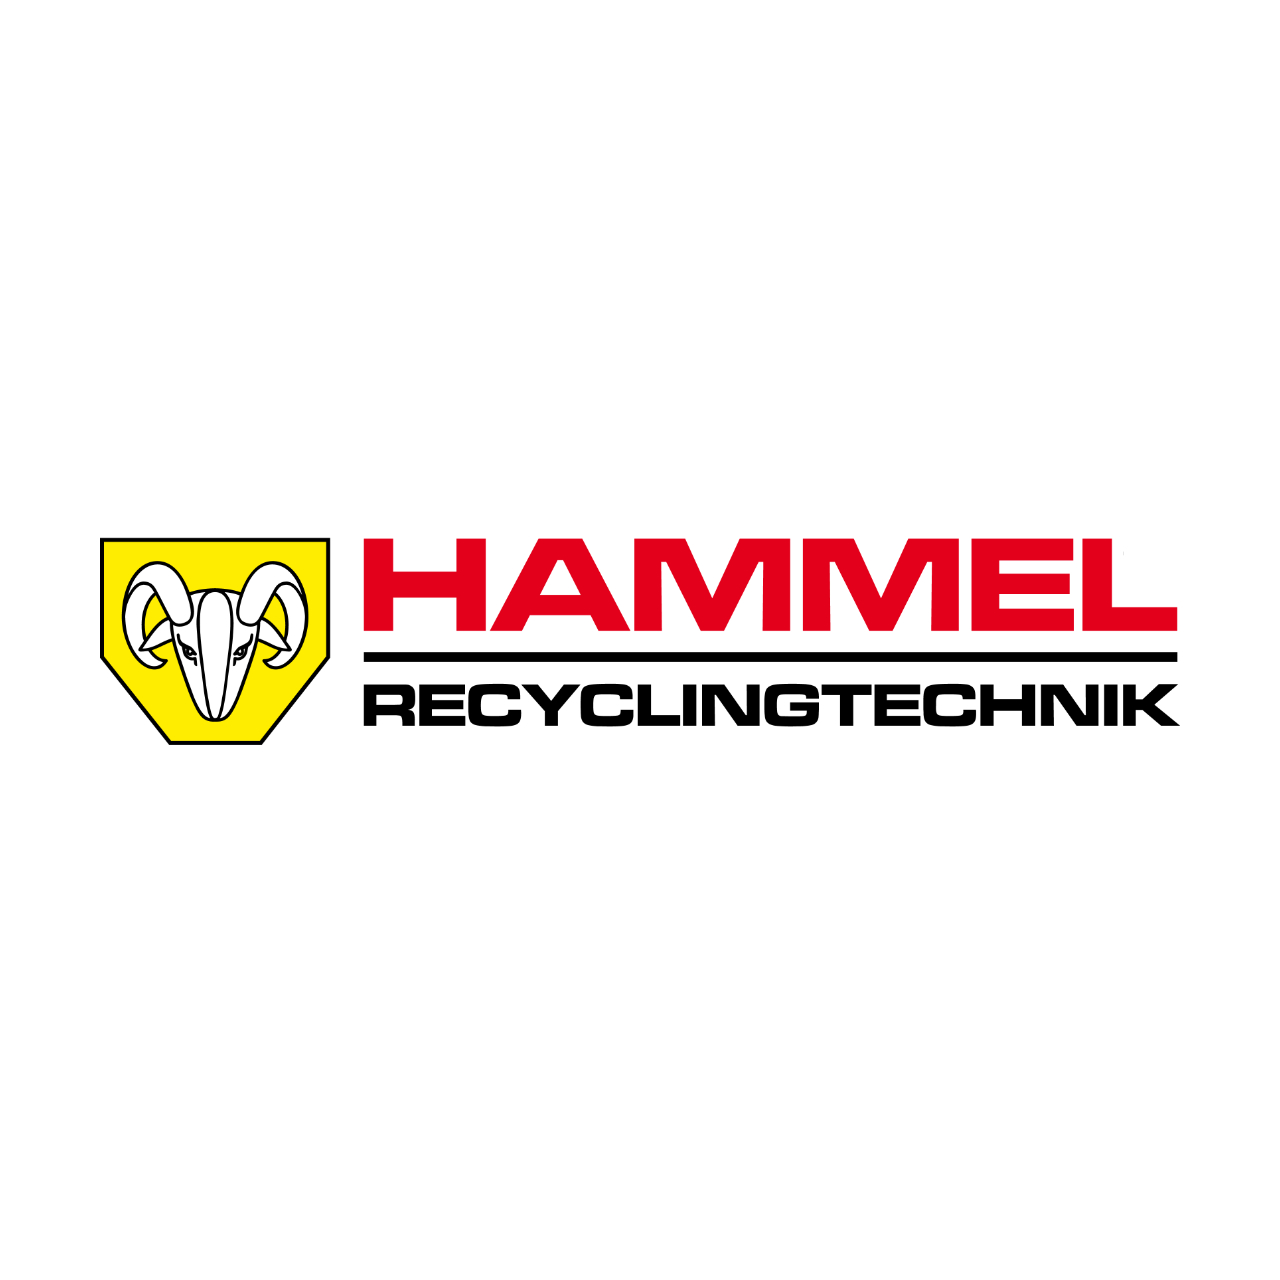 Hammel - Quality Made in Germany